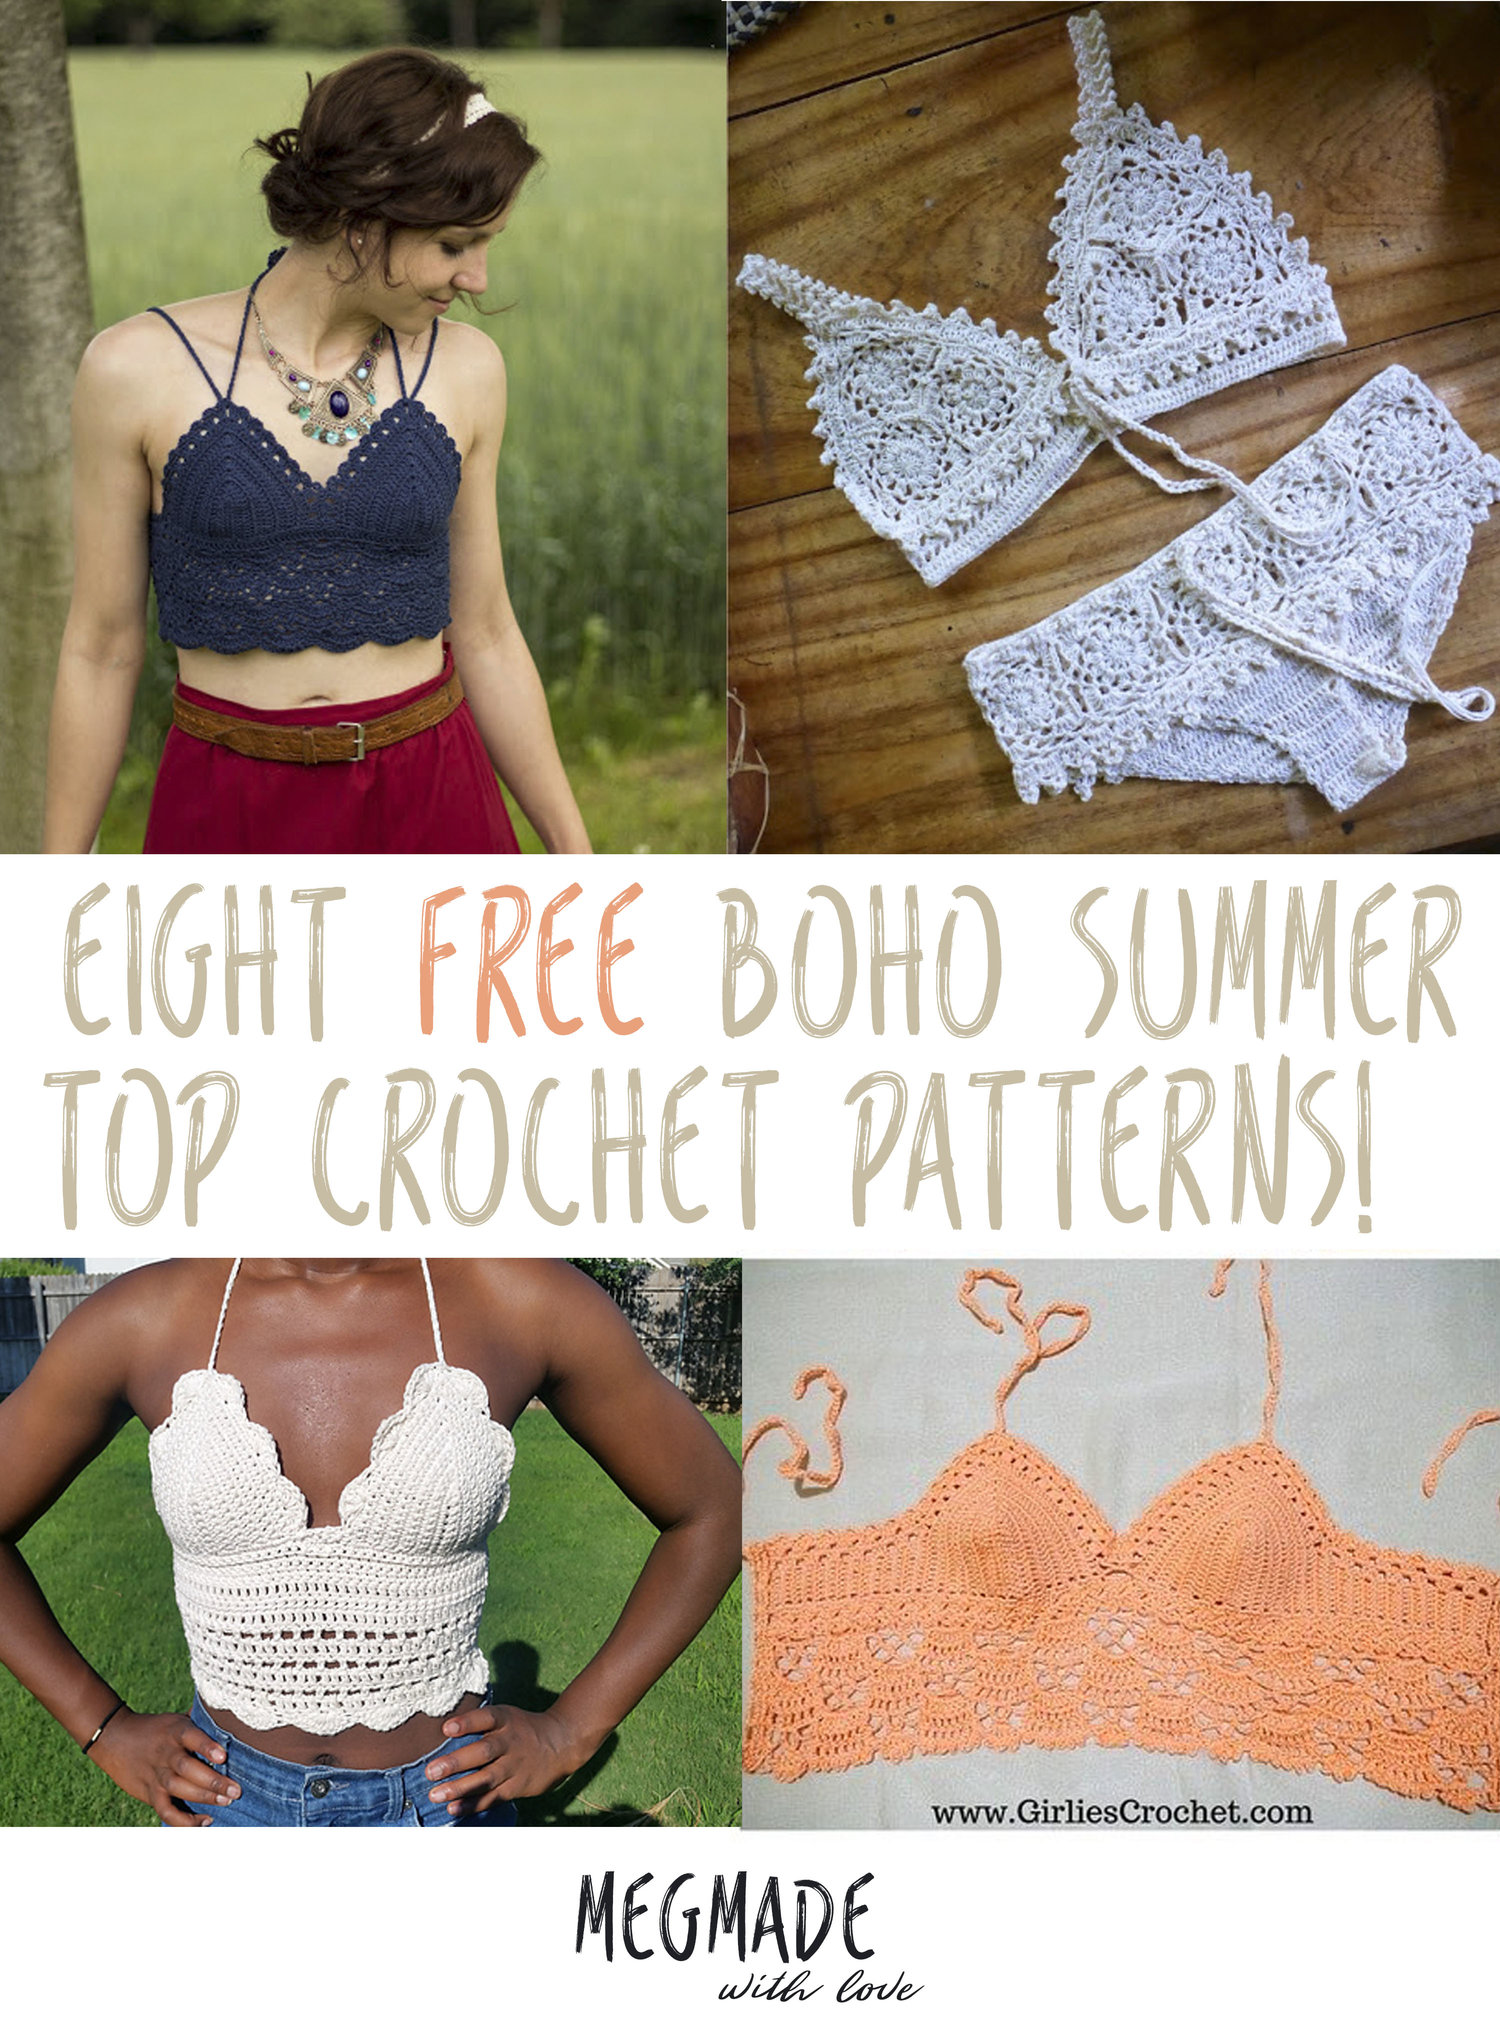 8 Free Boho Summer Top Crochet Patterns Megmade With Love